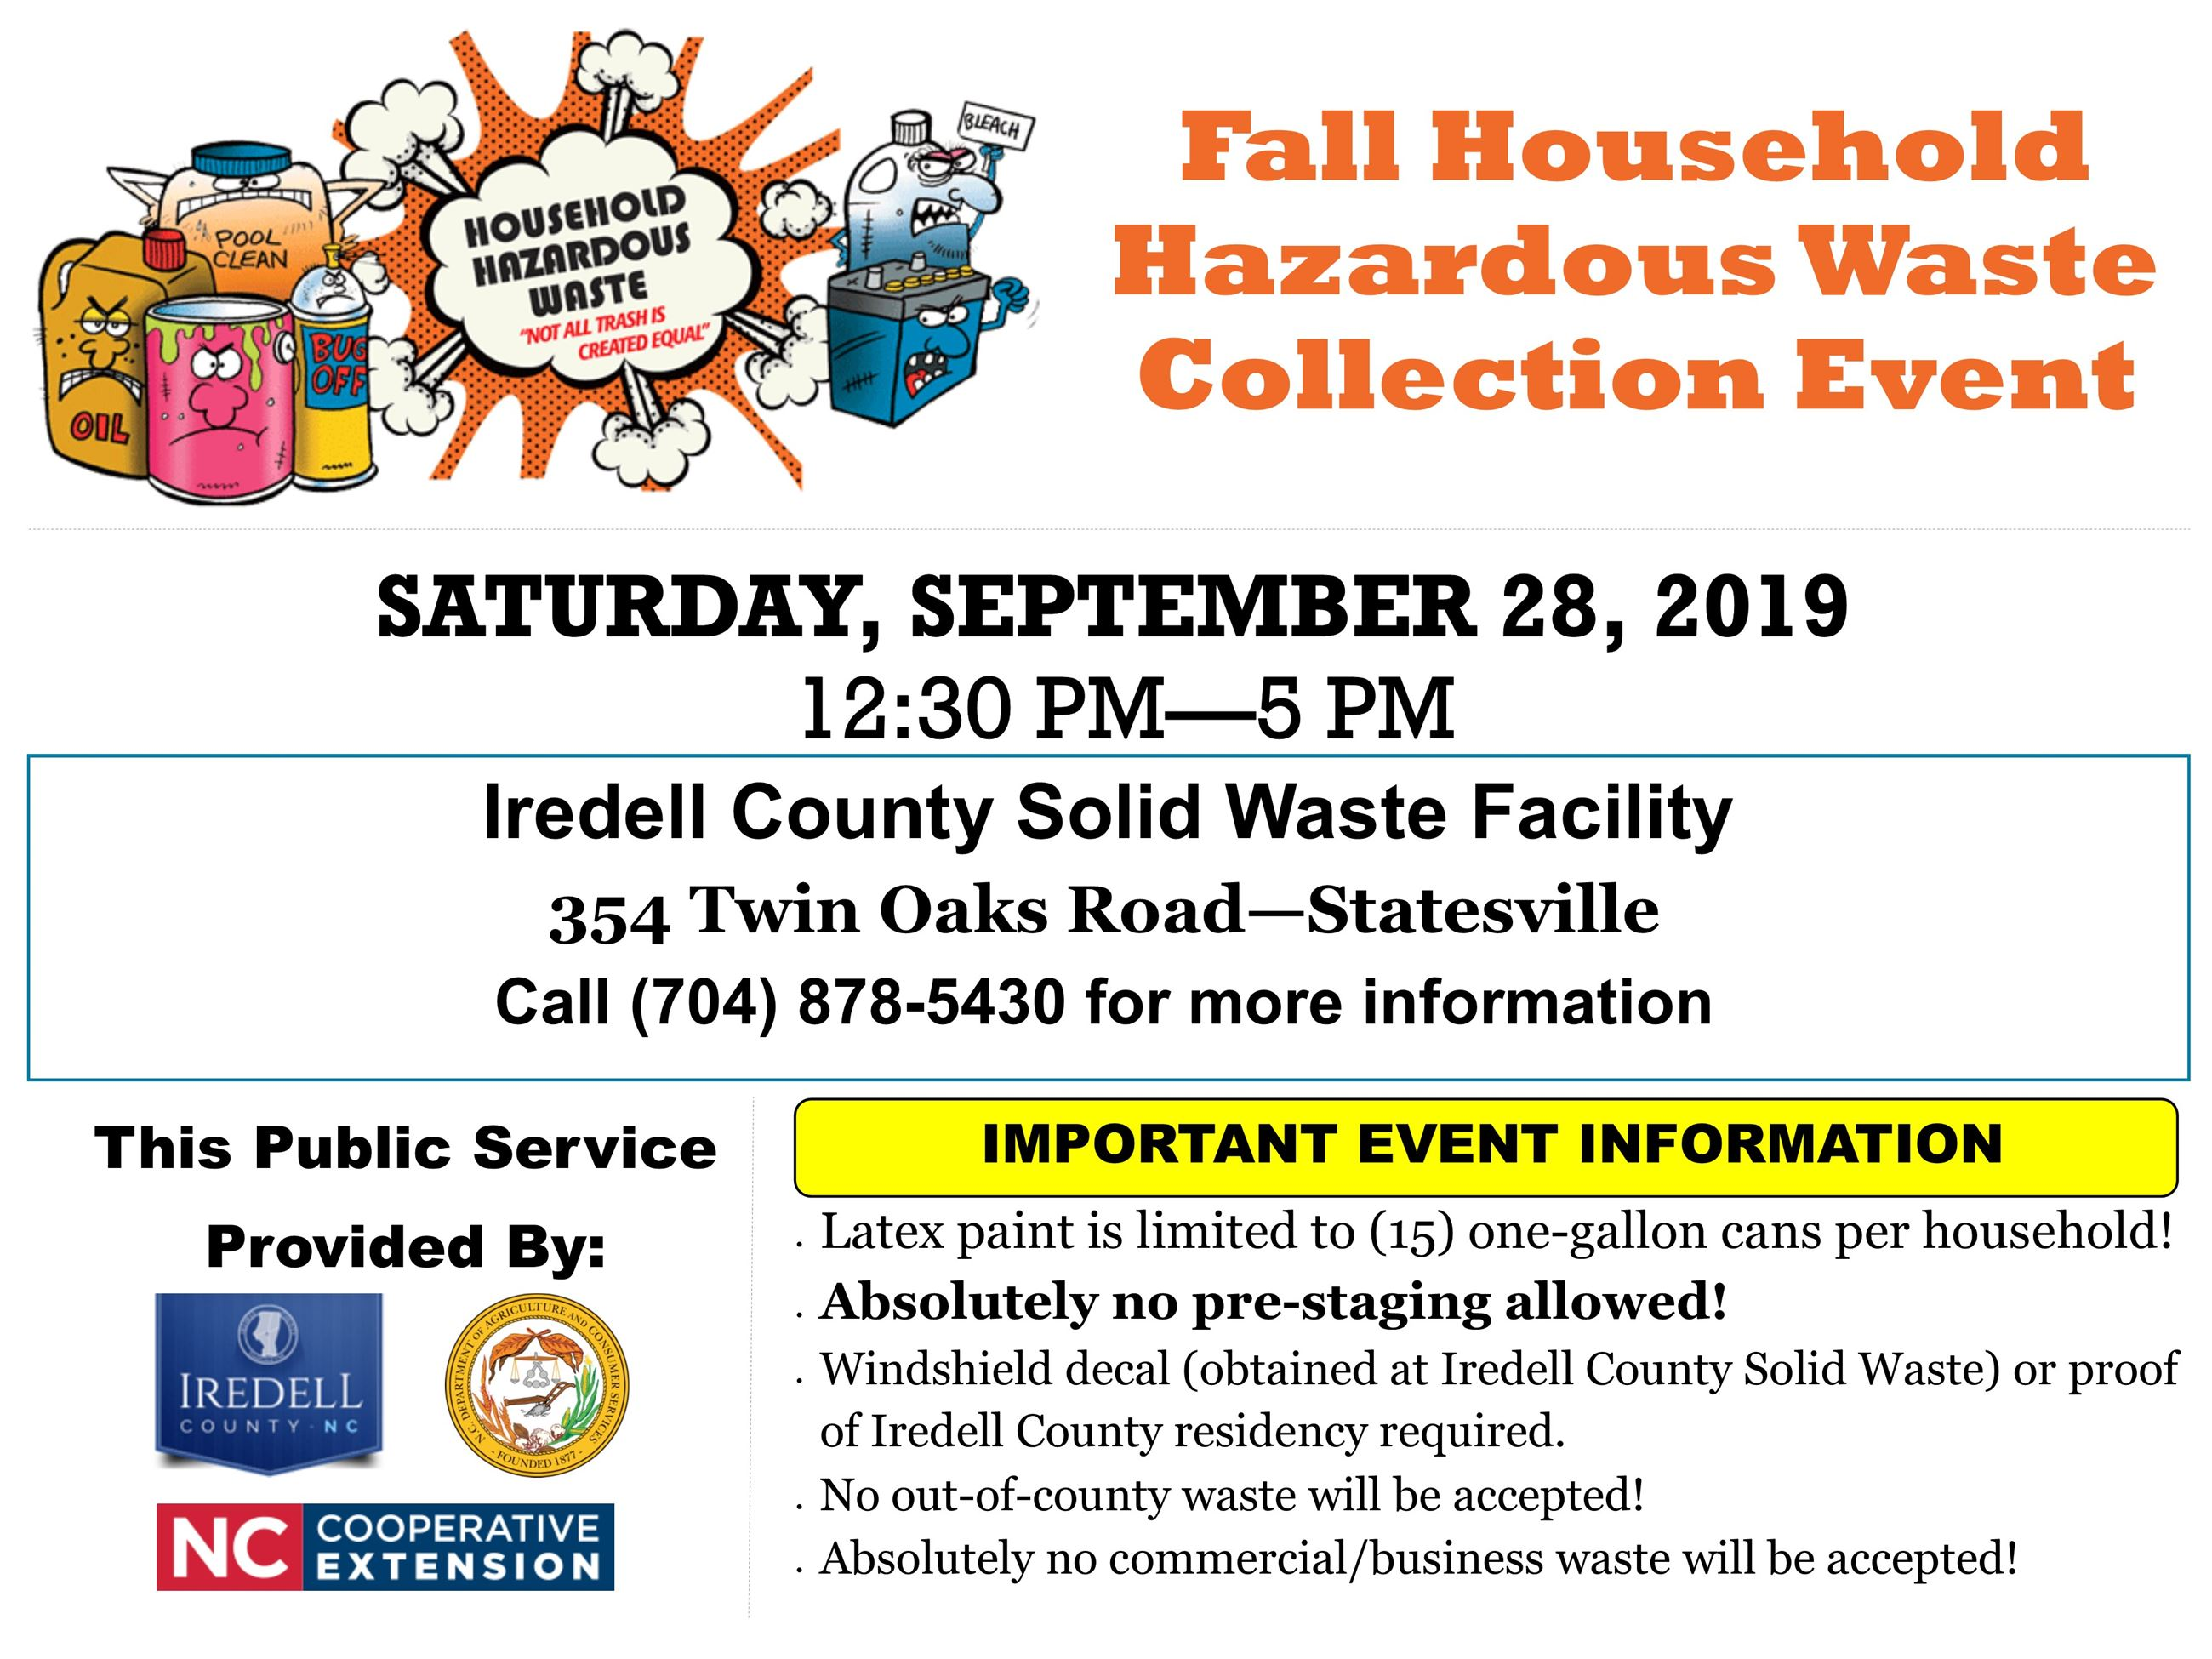 Fall Household Hazardous Waste Collection Event